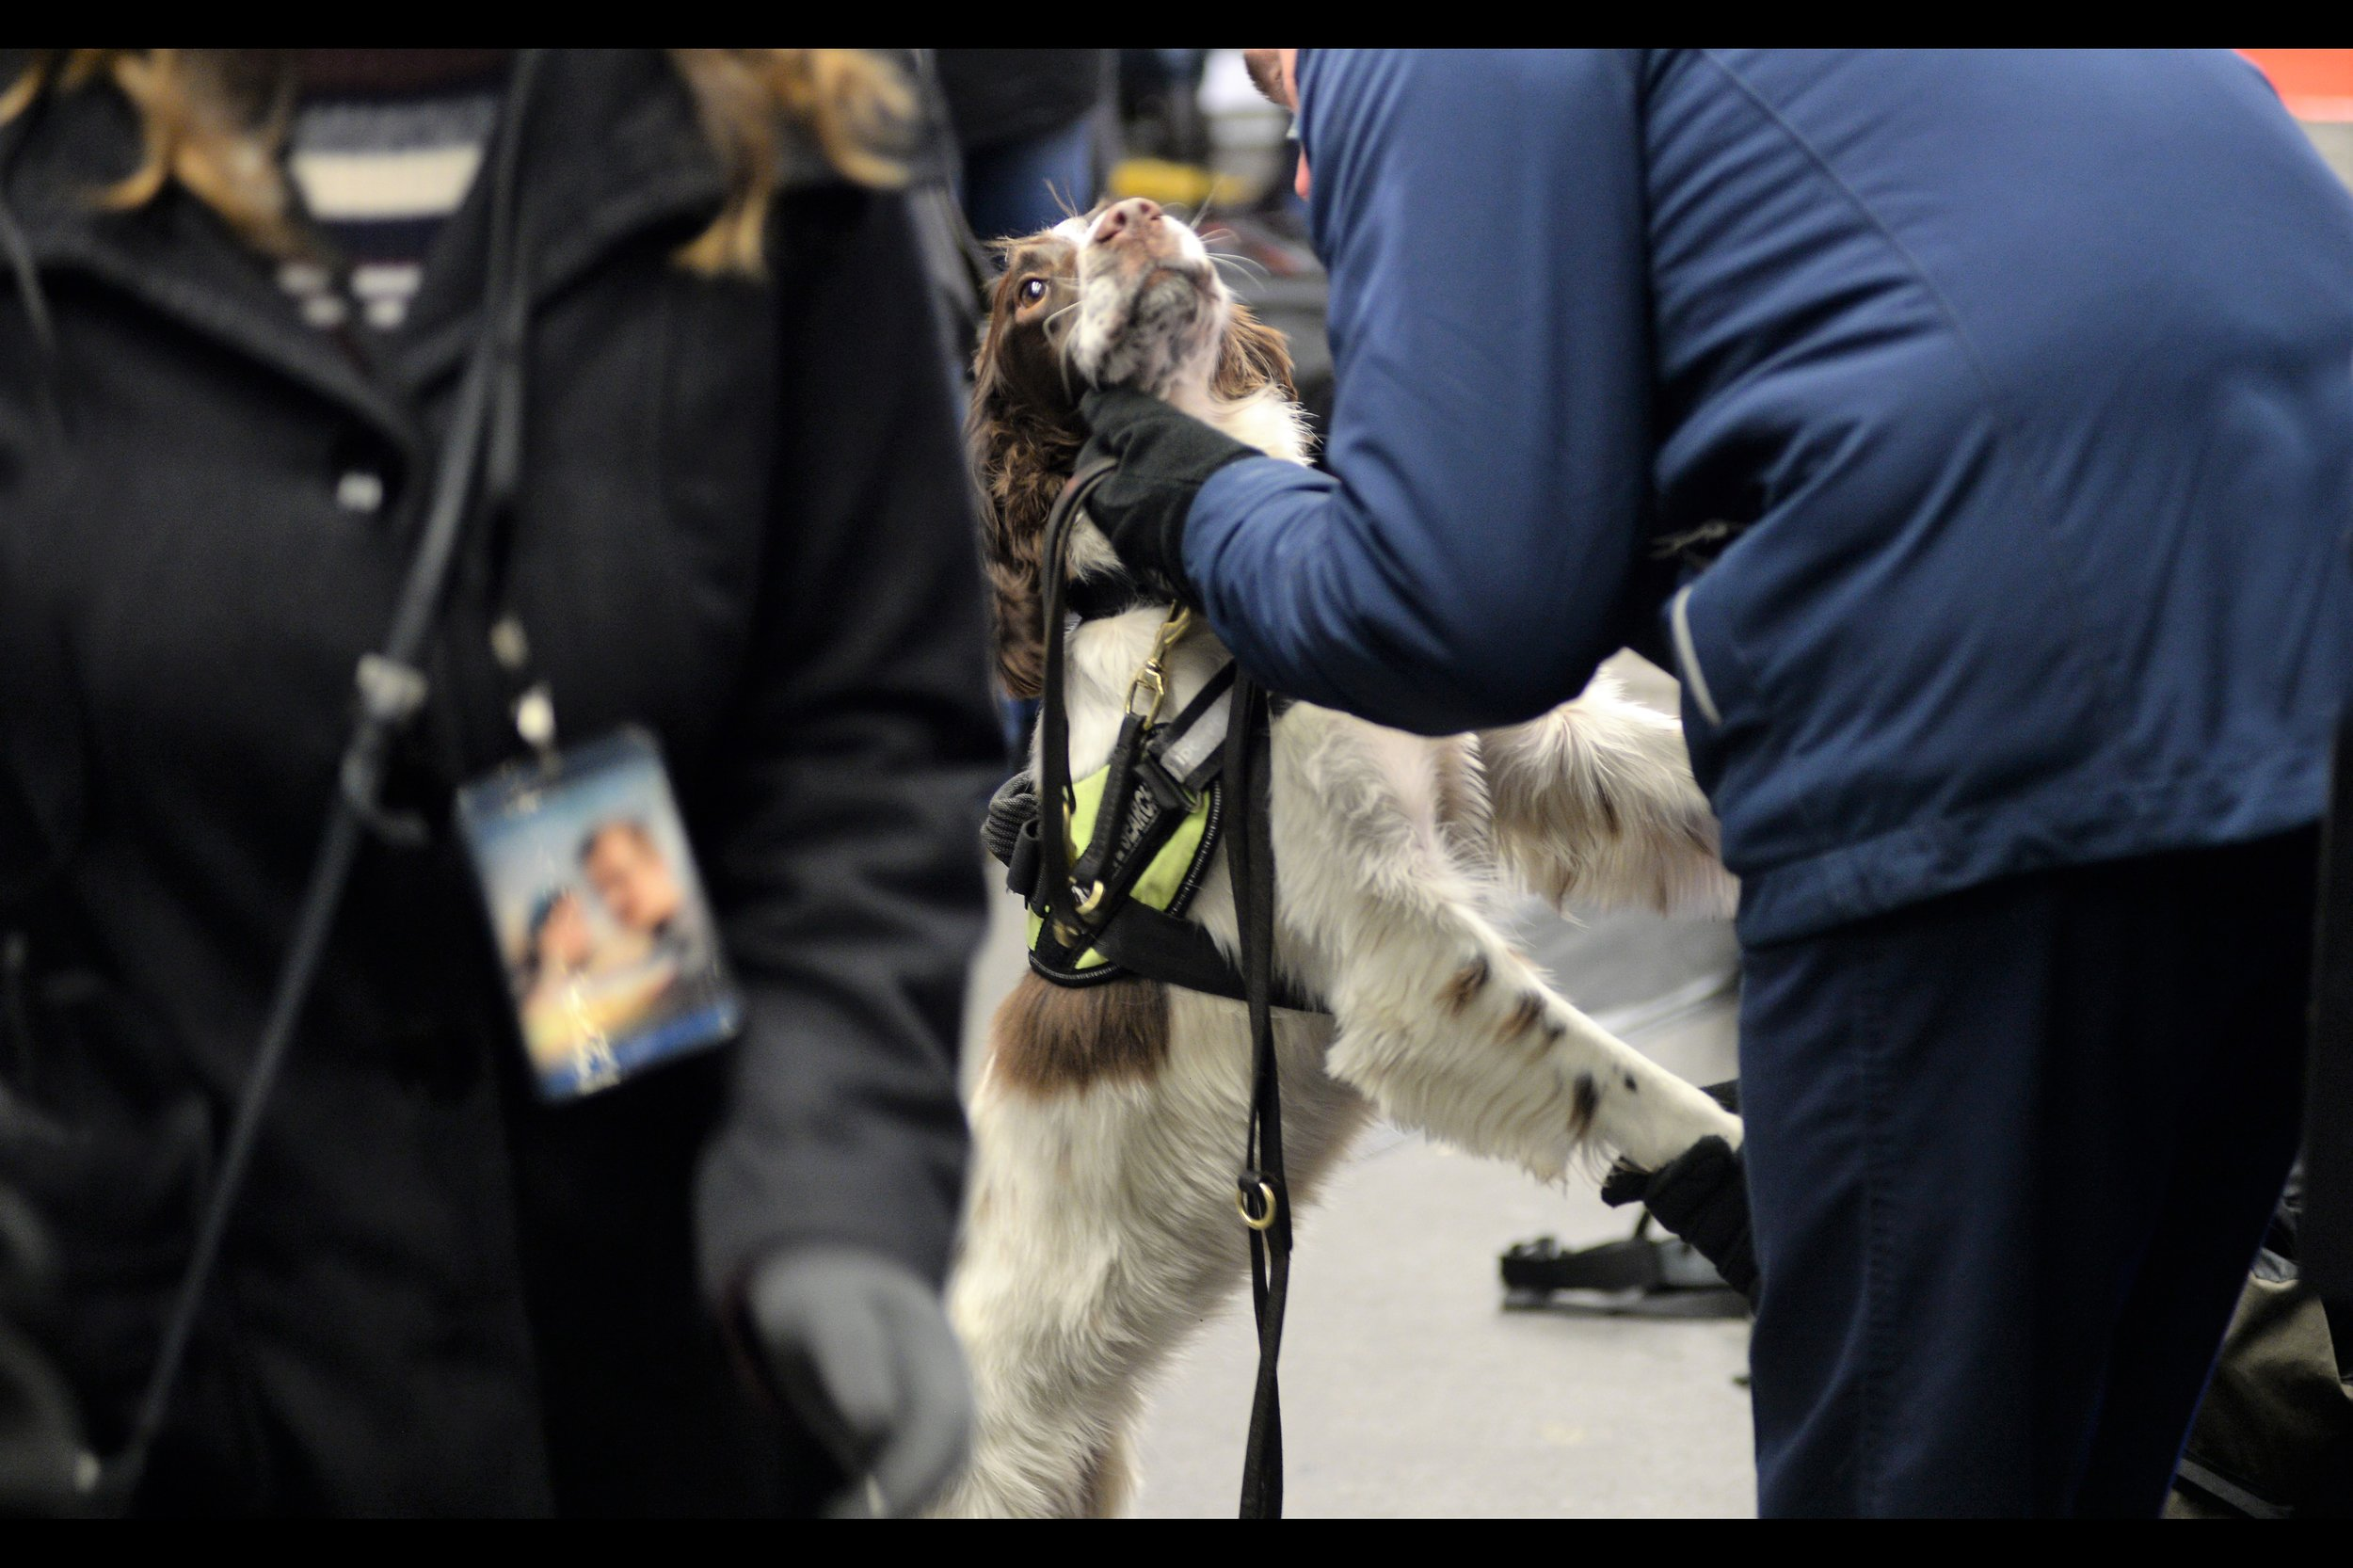 Awwwwww....cute security / explosives-sniffing dog. Would probably bite off your hand if your bag or its content smells weird, but nicely affectionate otherwise.